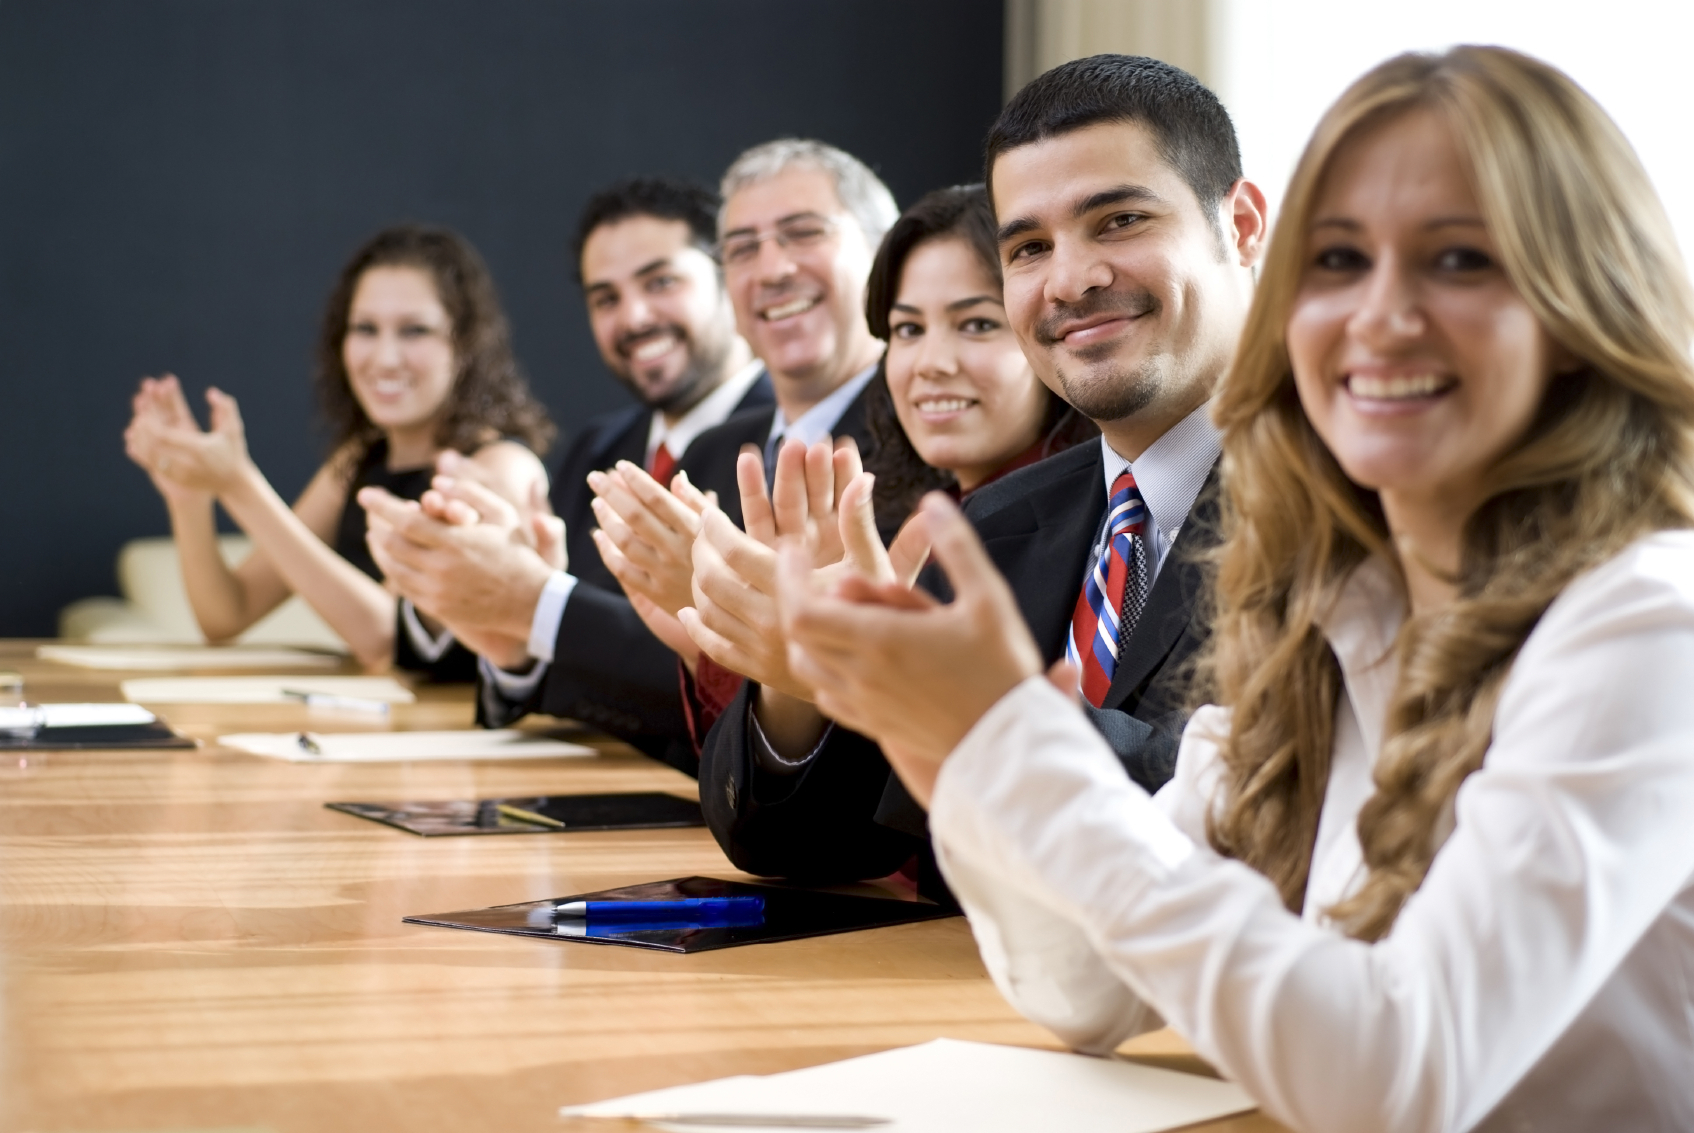 Meeting clapping success happy productive